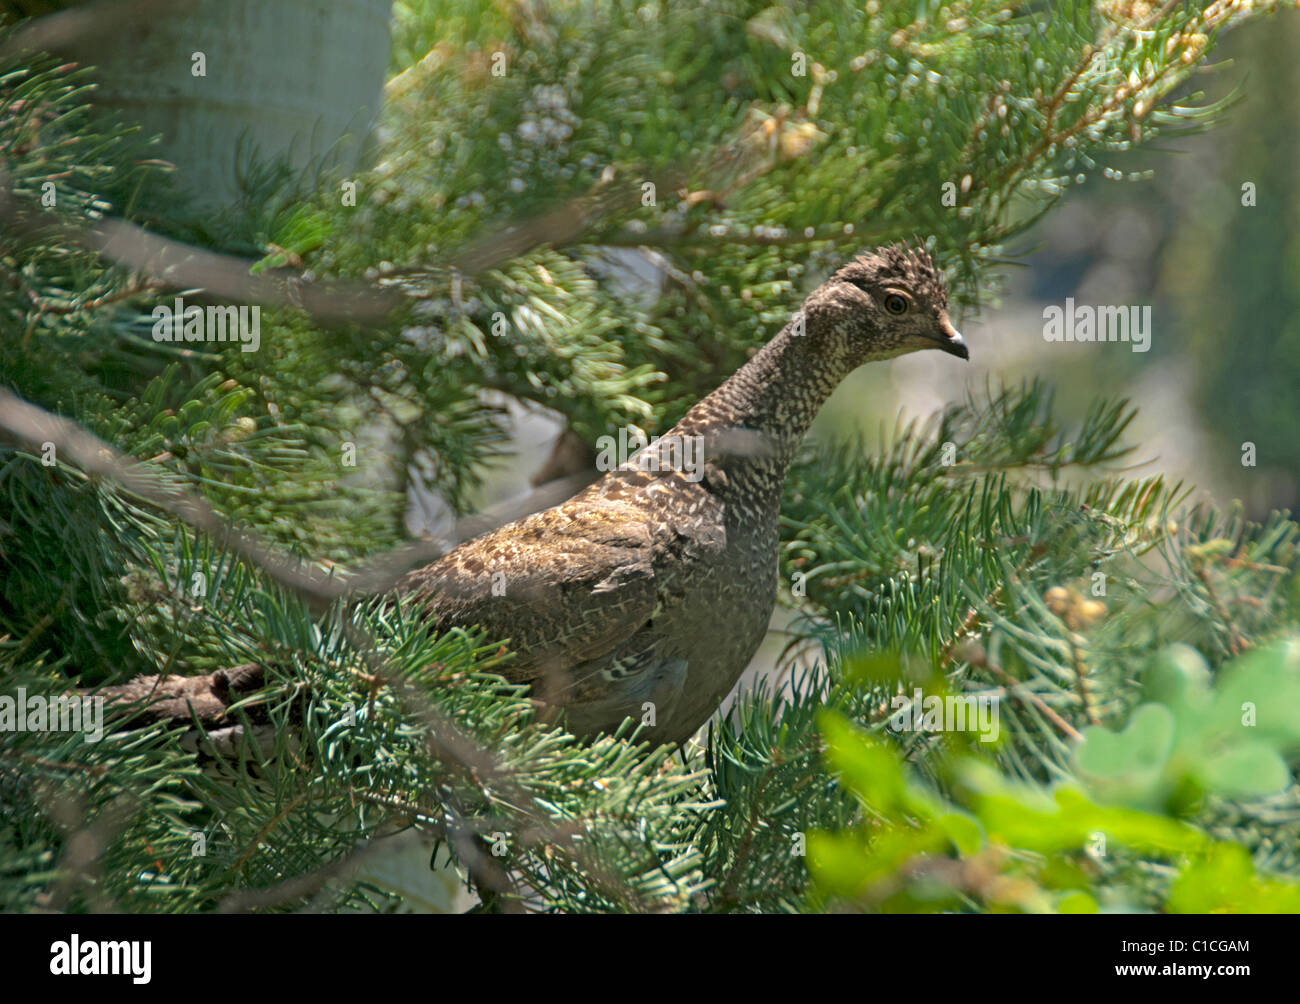 Female Blue Grouse (Dendragapus obscurus) near Ouray, Colorado US. - Stock Image